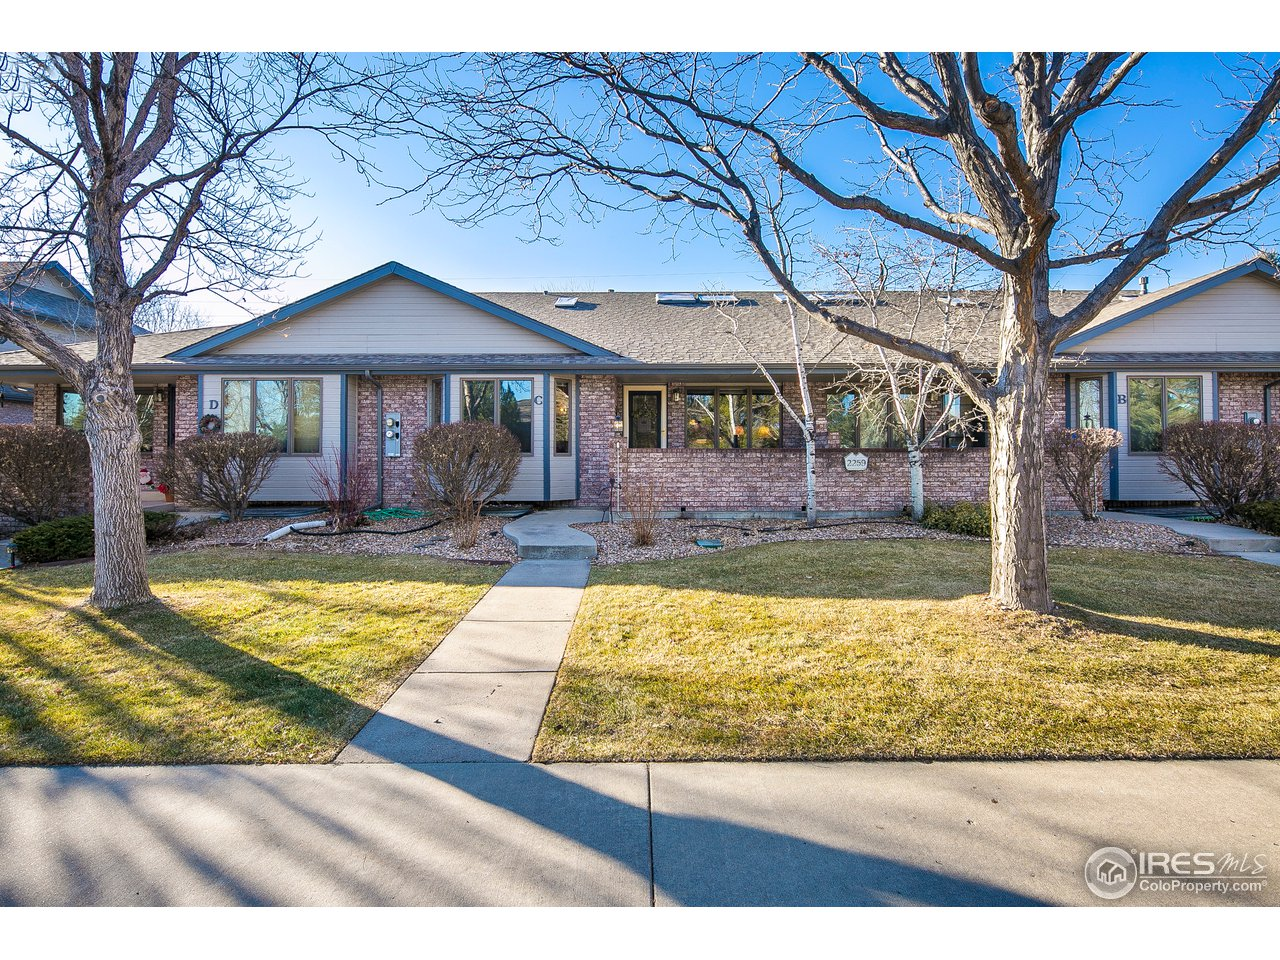 2259 46TH AVE CT #C, GREELEY, CO 80634